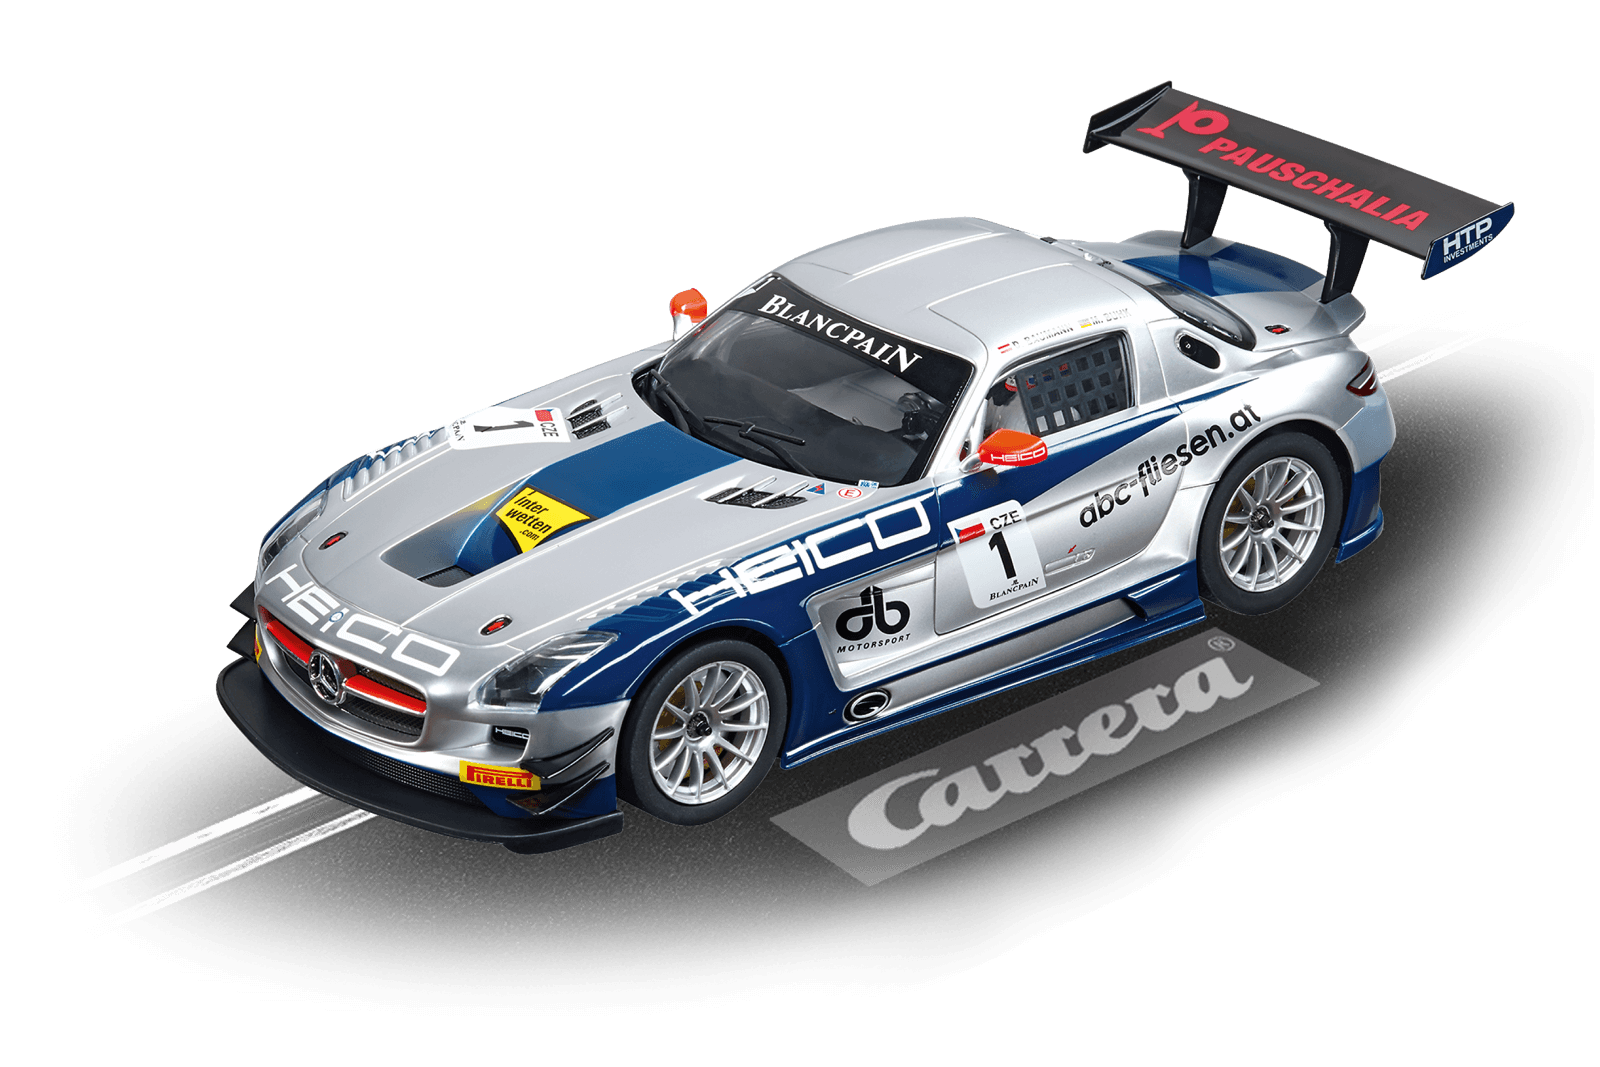 Top Tuning Carrera 124 Digitale - Mercedes SLS AMG Gt3 -   Heico   come 23791